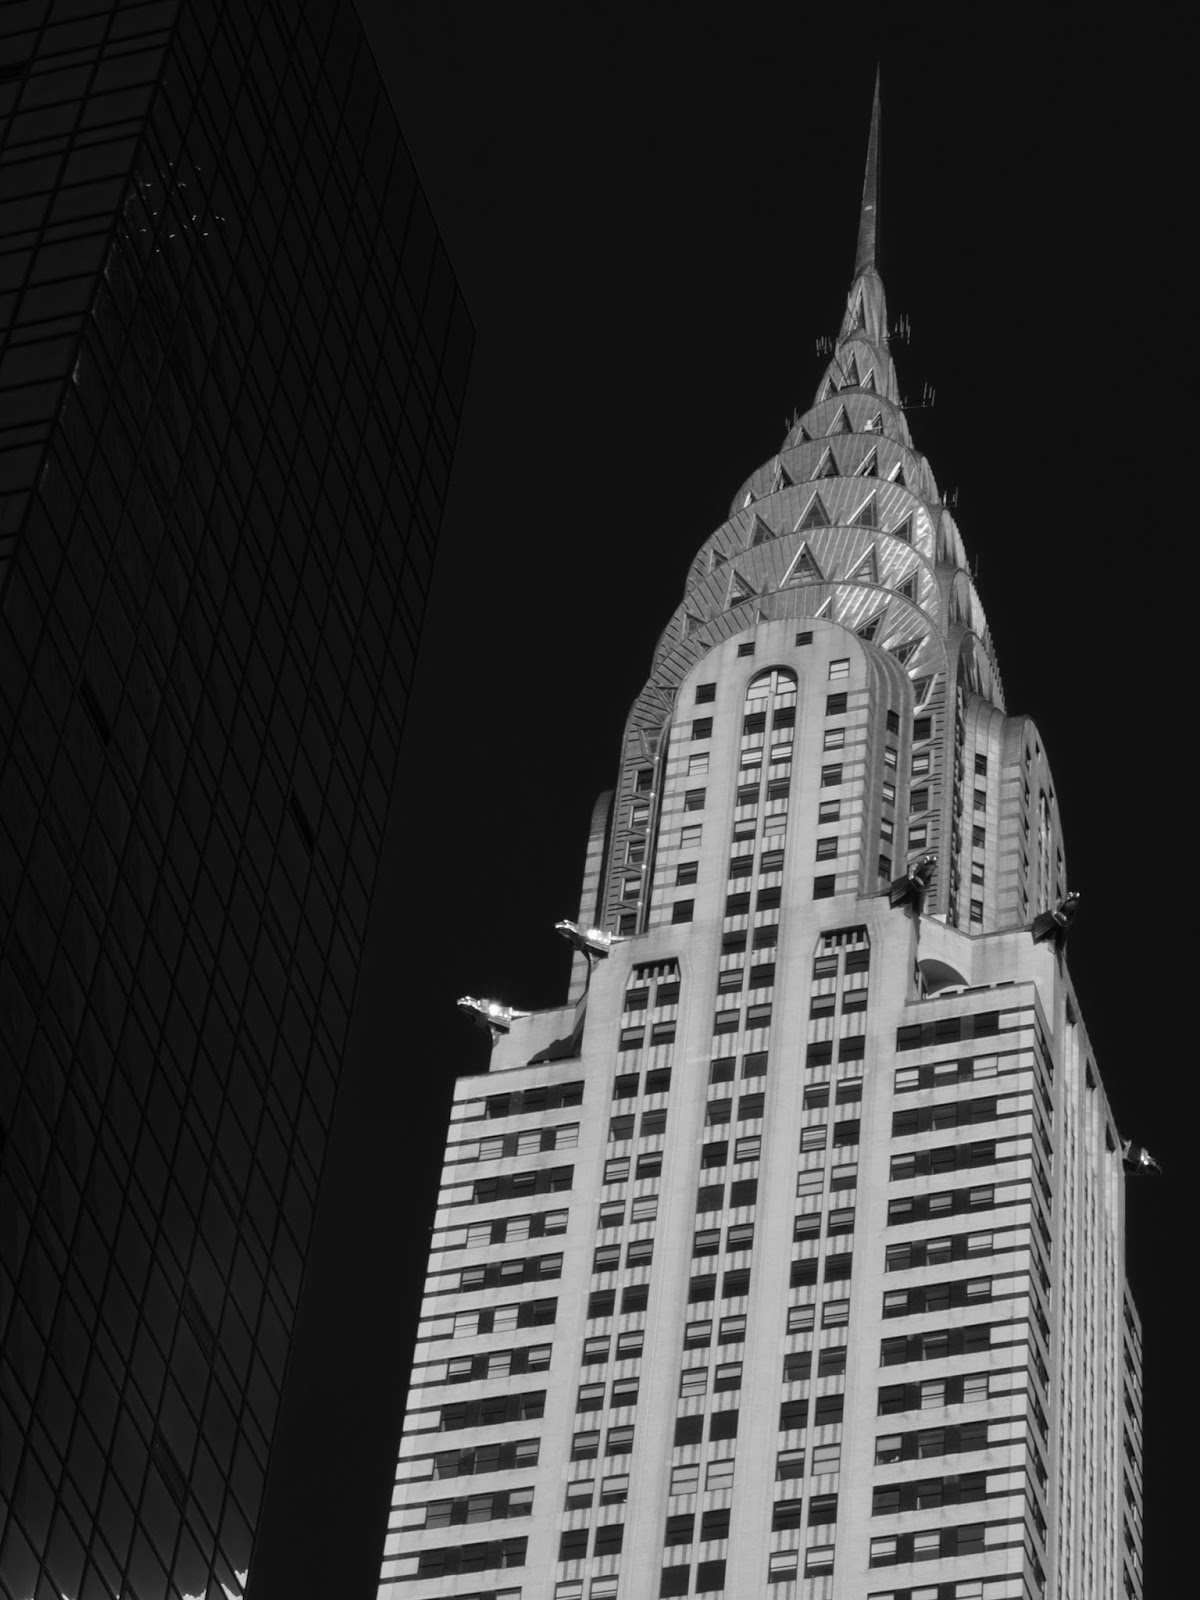 Letting the Art Deco Stand Out, #chryslerbuilding #artdeco #architecture #nyc 2014